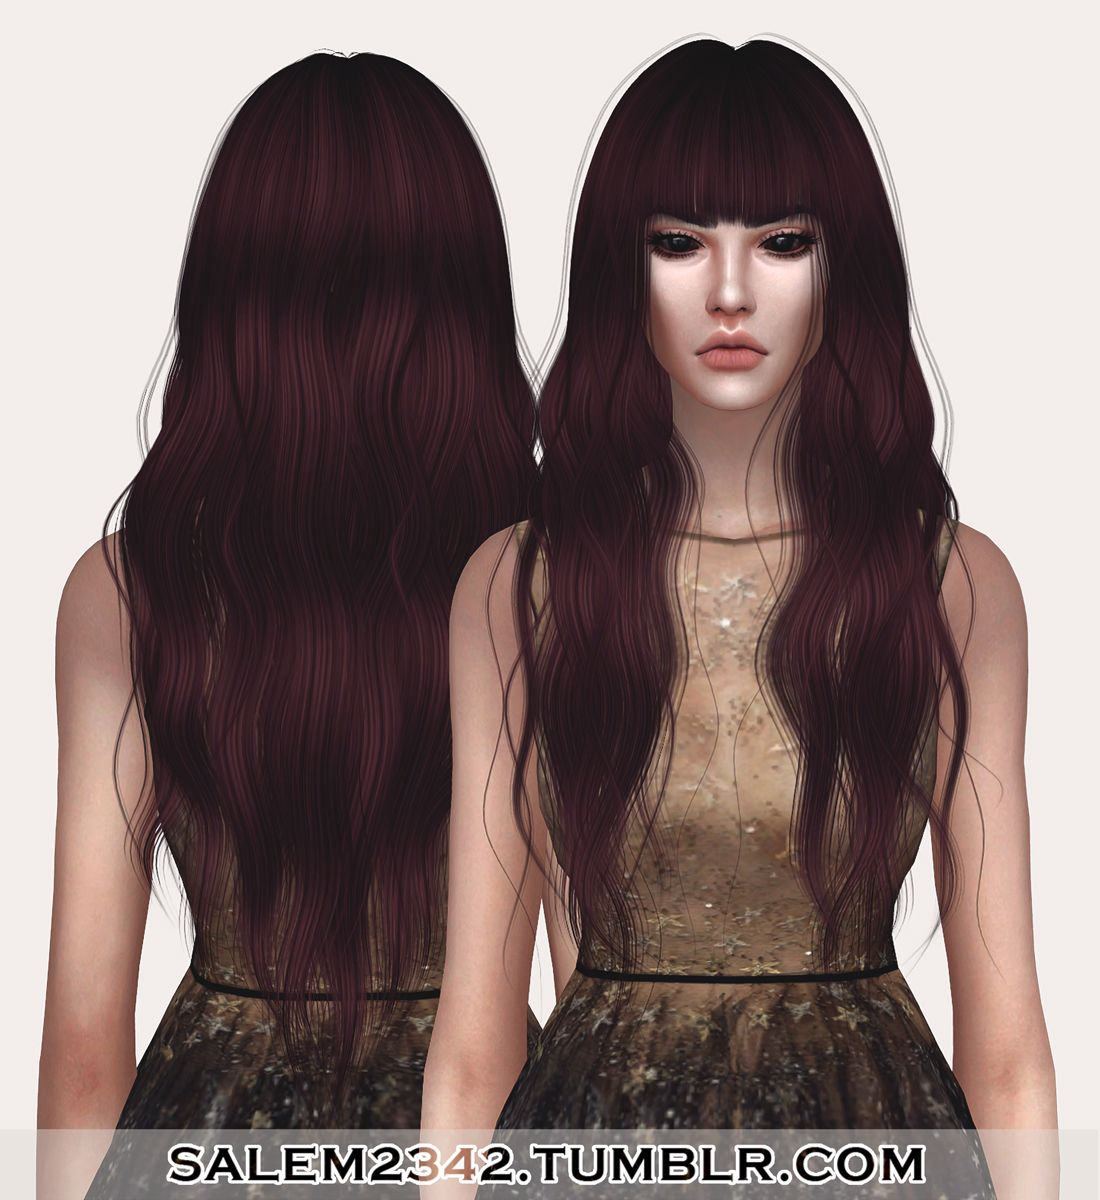 Anto Dawn Hair Retexture (TS4)• standalone • 30 swatches • MESH IS NOT INCLUDED -> download mesh (you need it!) • textures by me DOWNLOAD